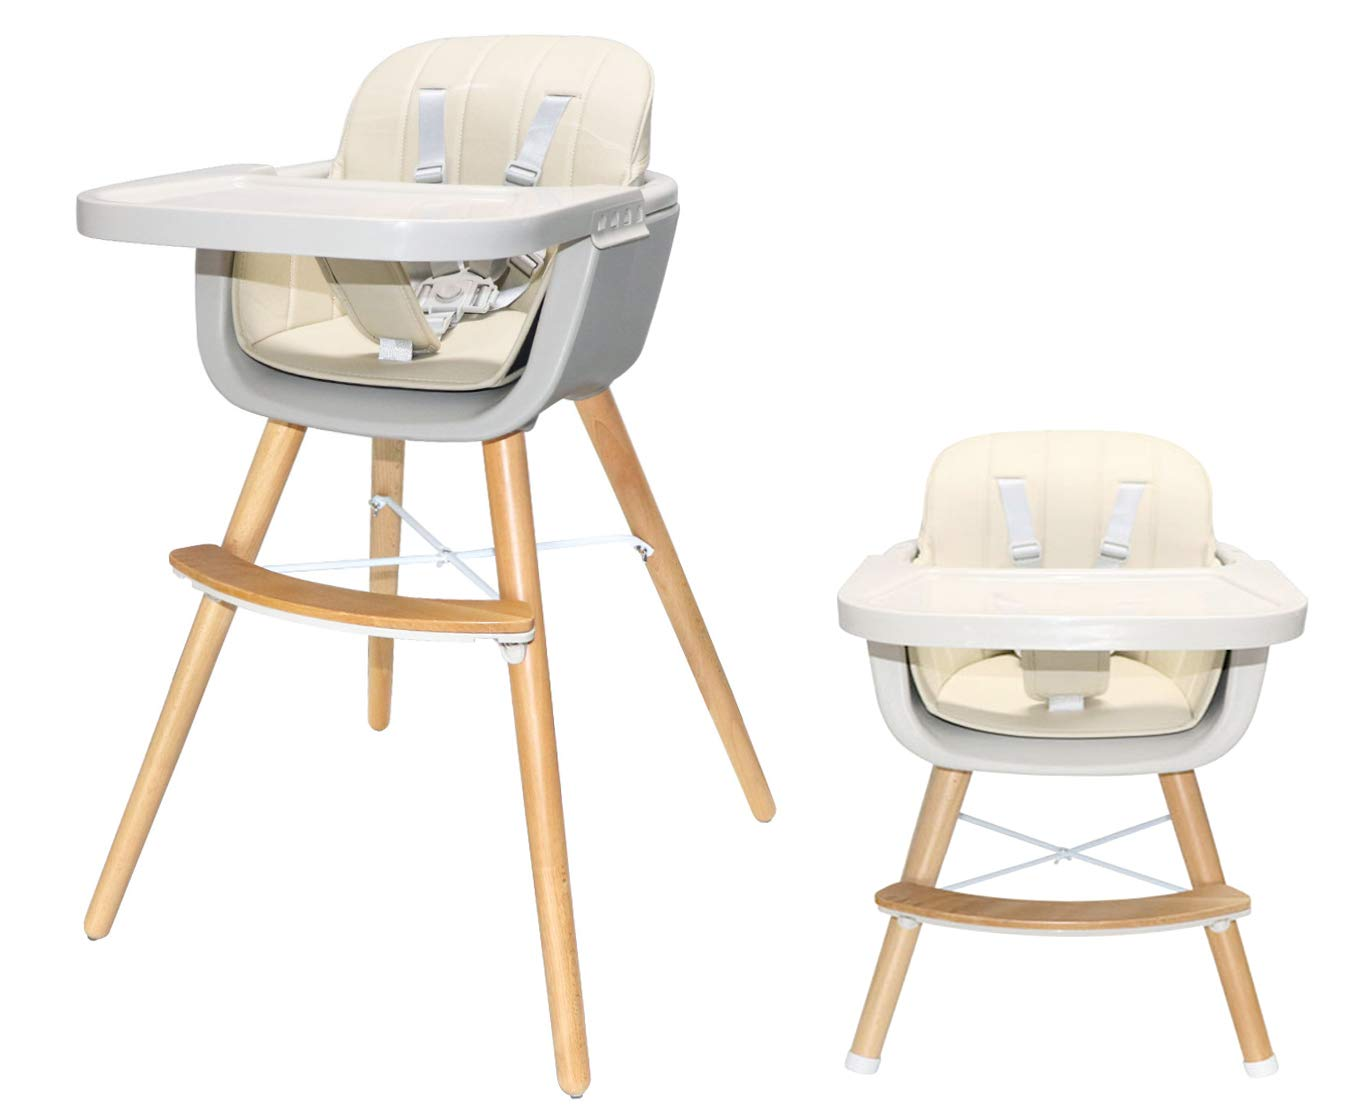 Amazon Com Asunflower Wood High Chair Toddlers 3 In 1 Convertible Modern Baby Highchair Solution For Babies And Infants With Cushion Baby